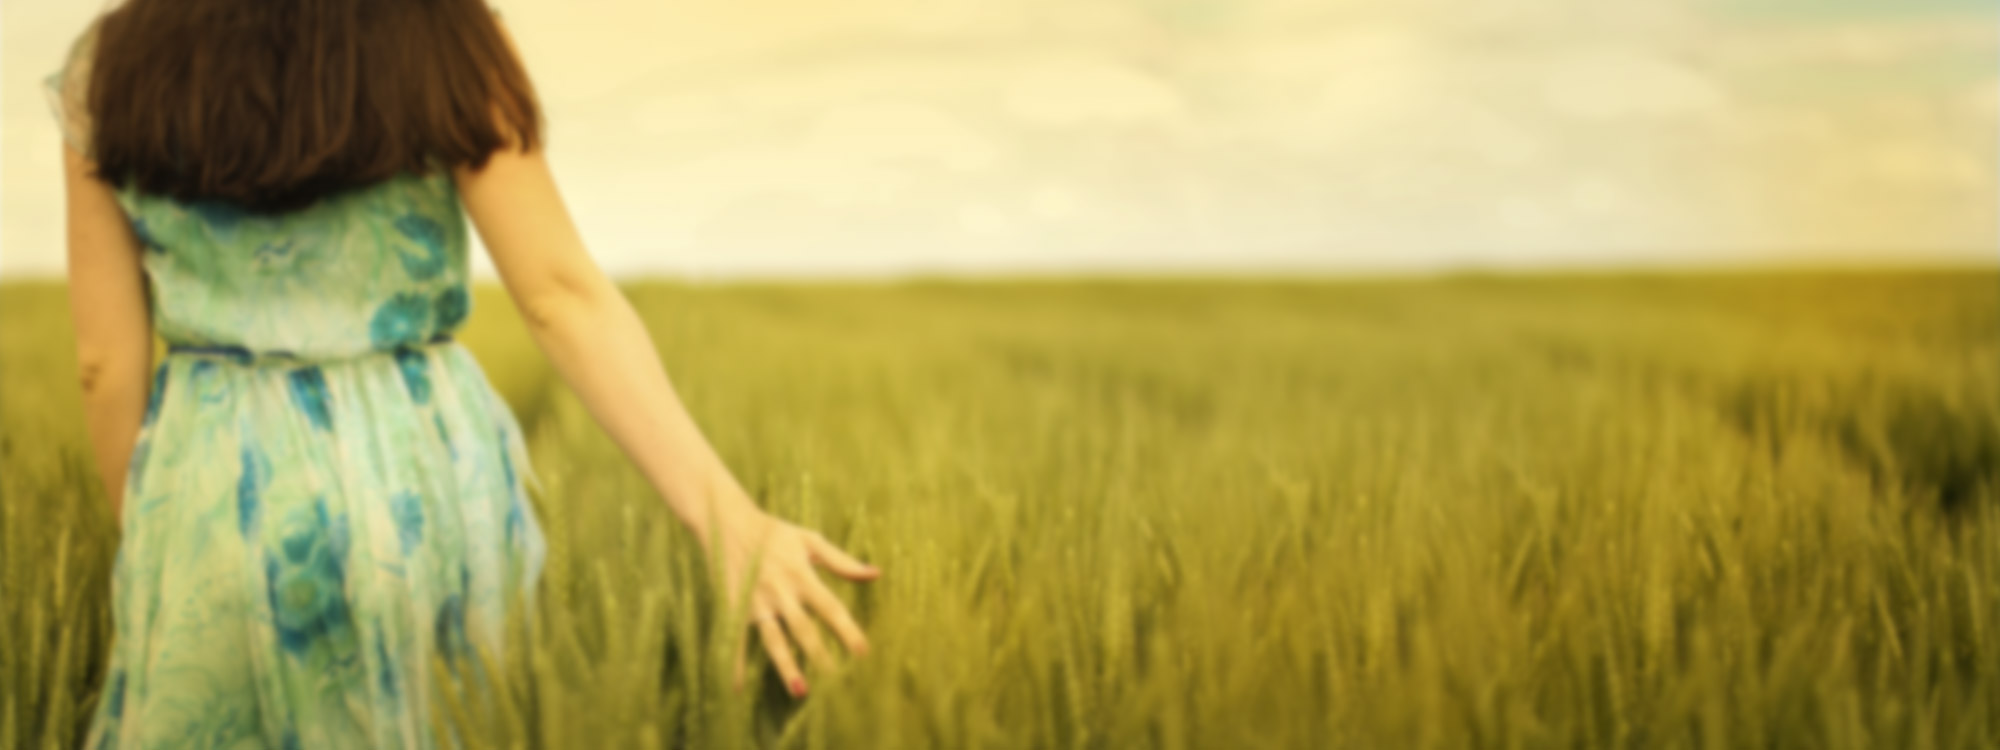 grass-field-woman